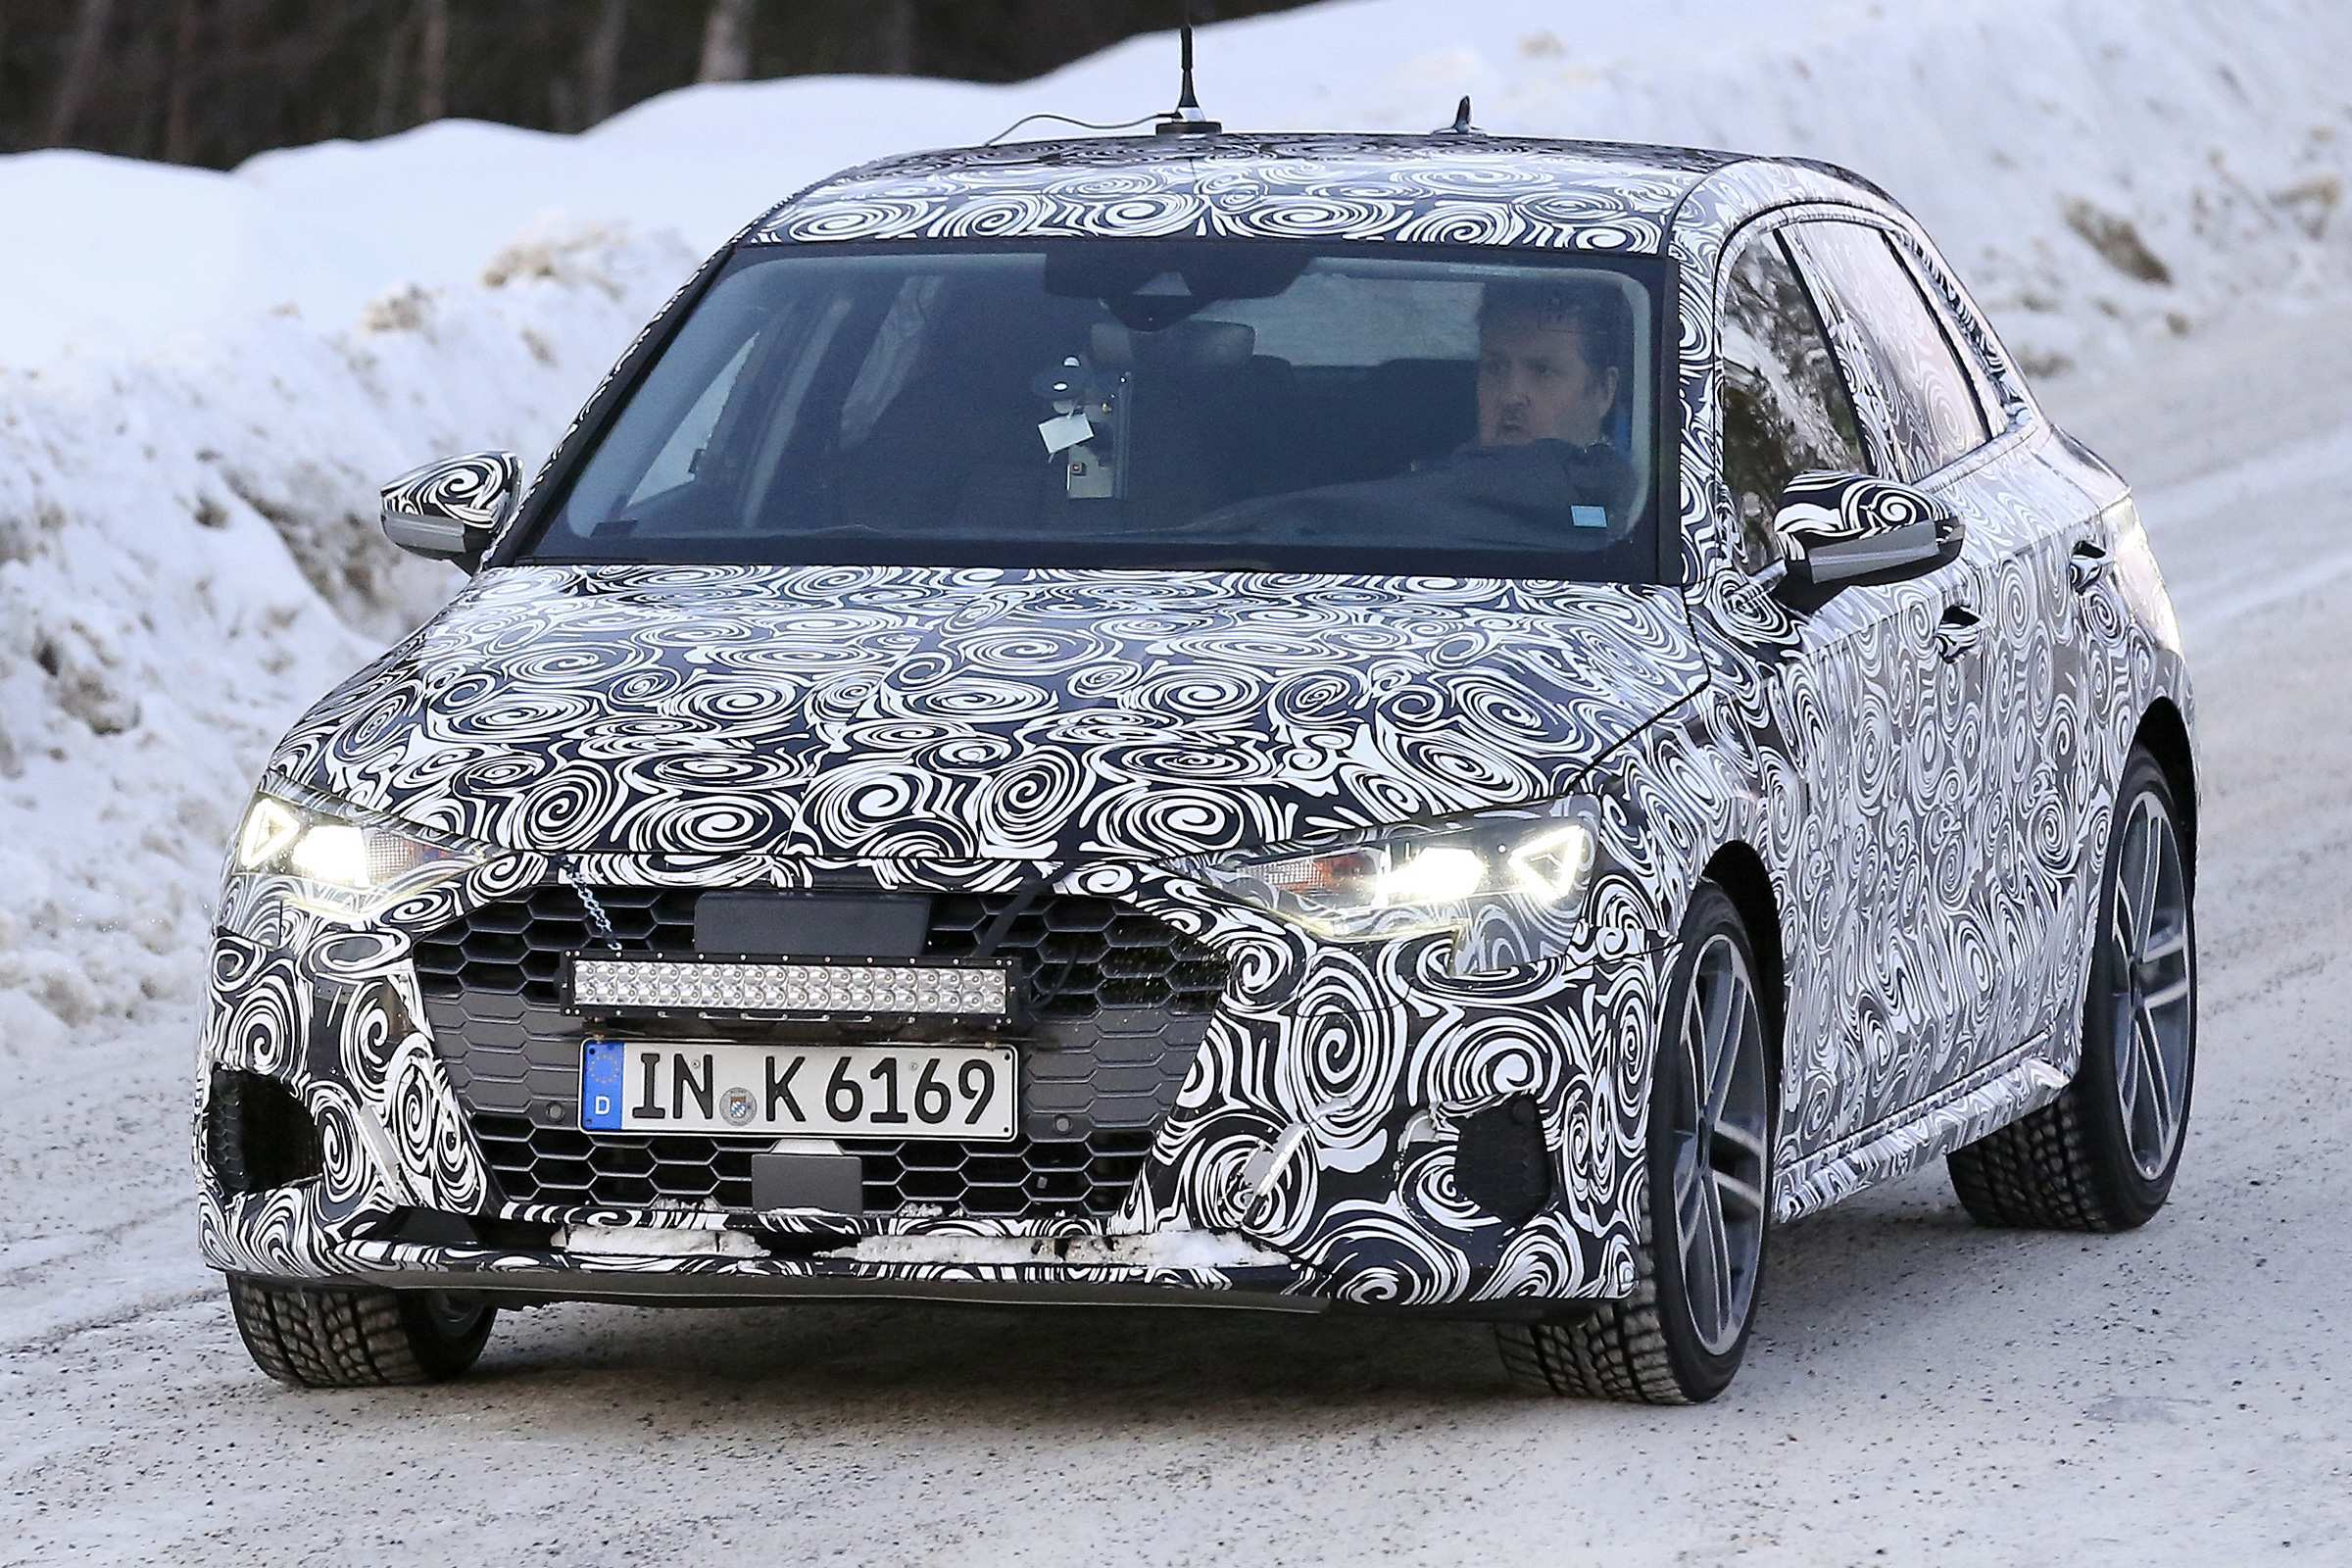 72 Great The Audi A3 Coupe 2019 Review Specs And Release Date Specs and Review by The Audi A3 Coupe 2019 Review Specs And Release Date